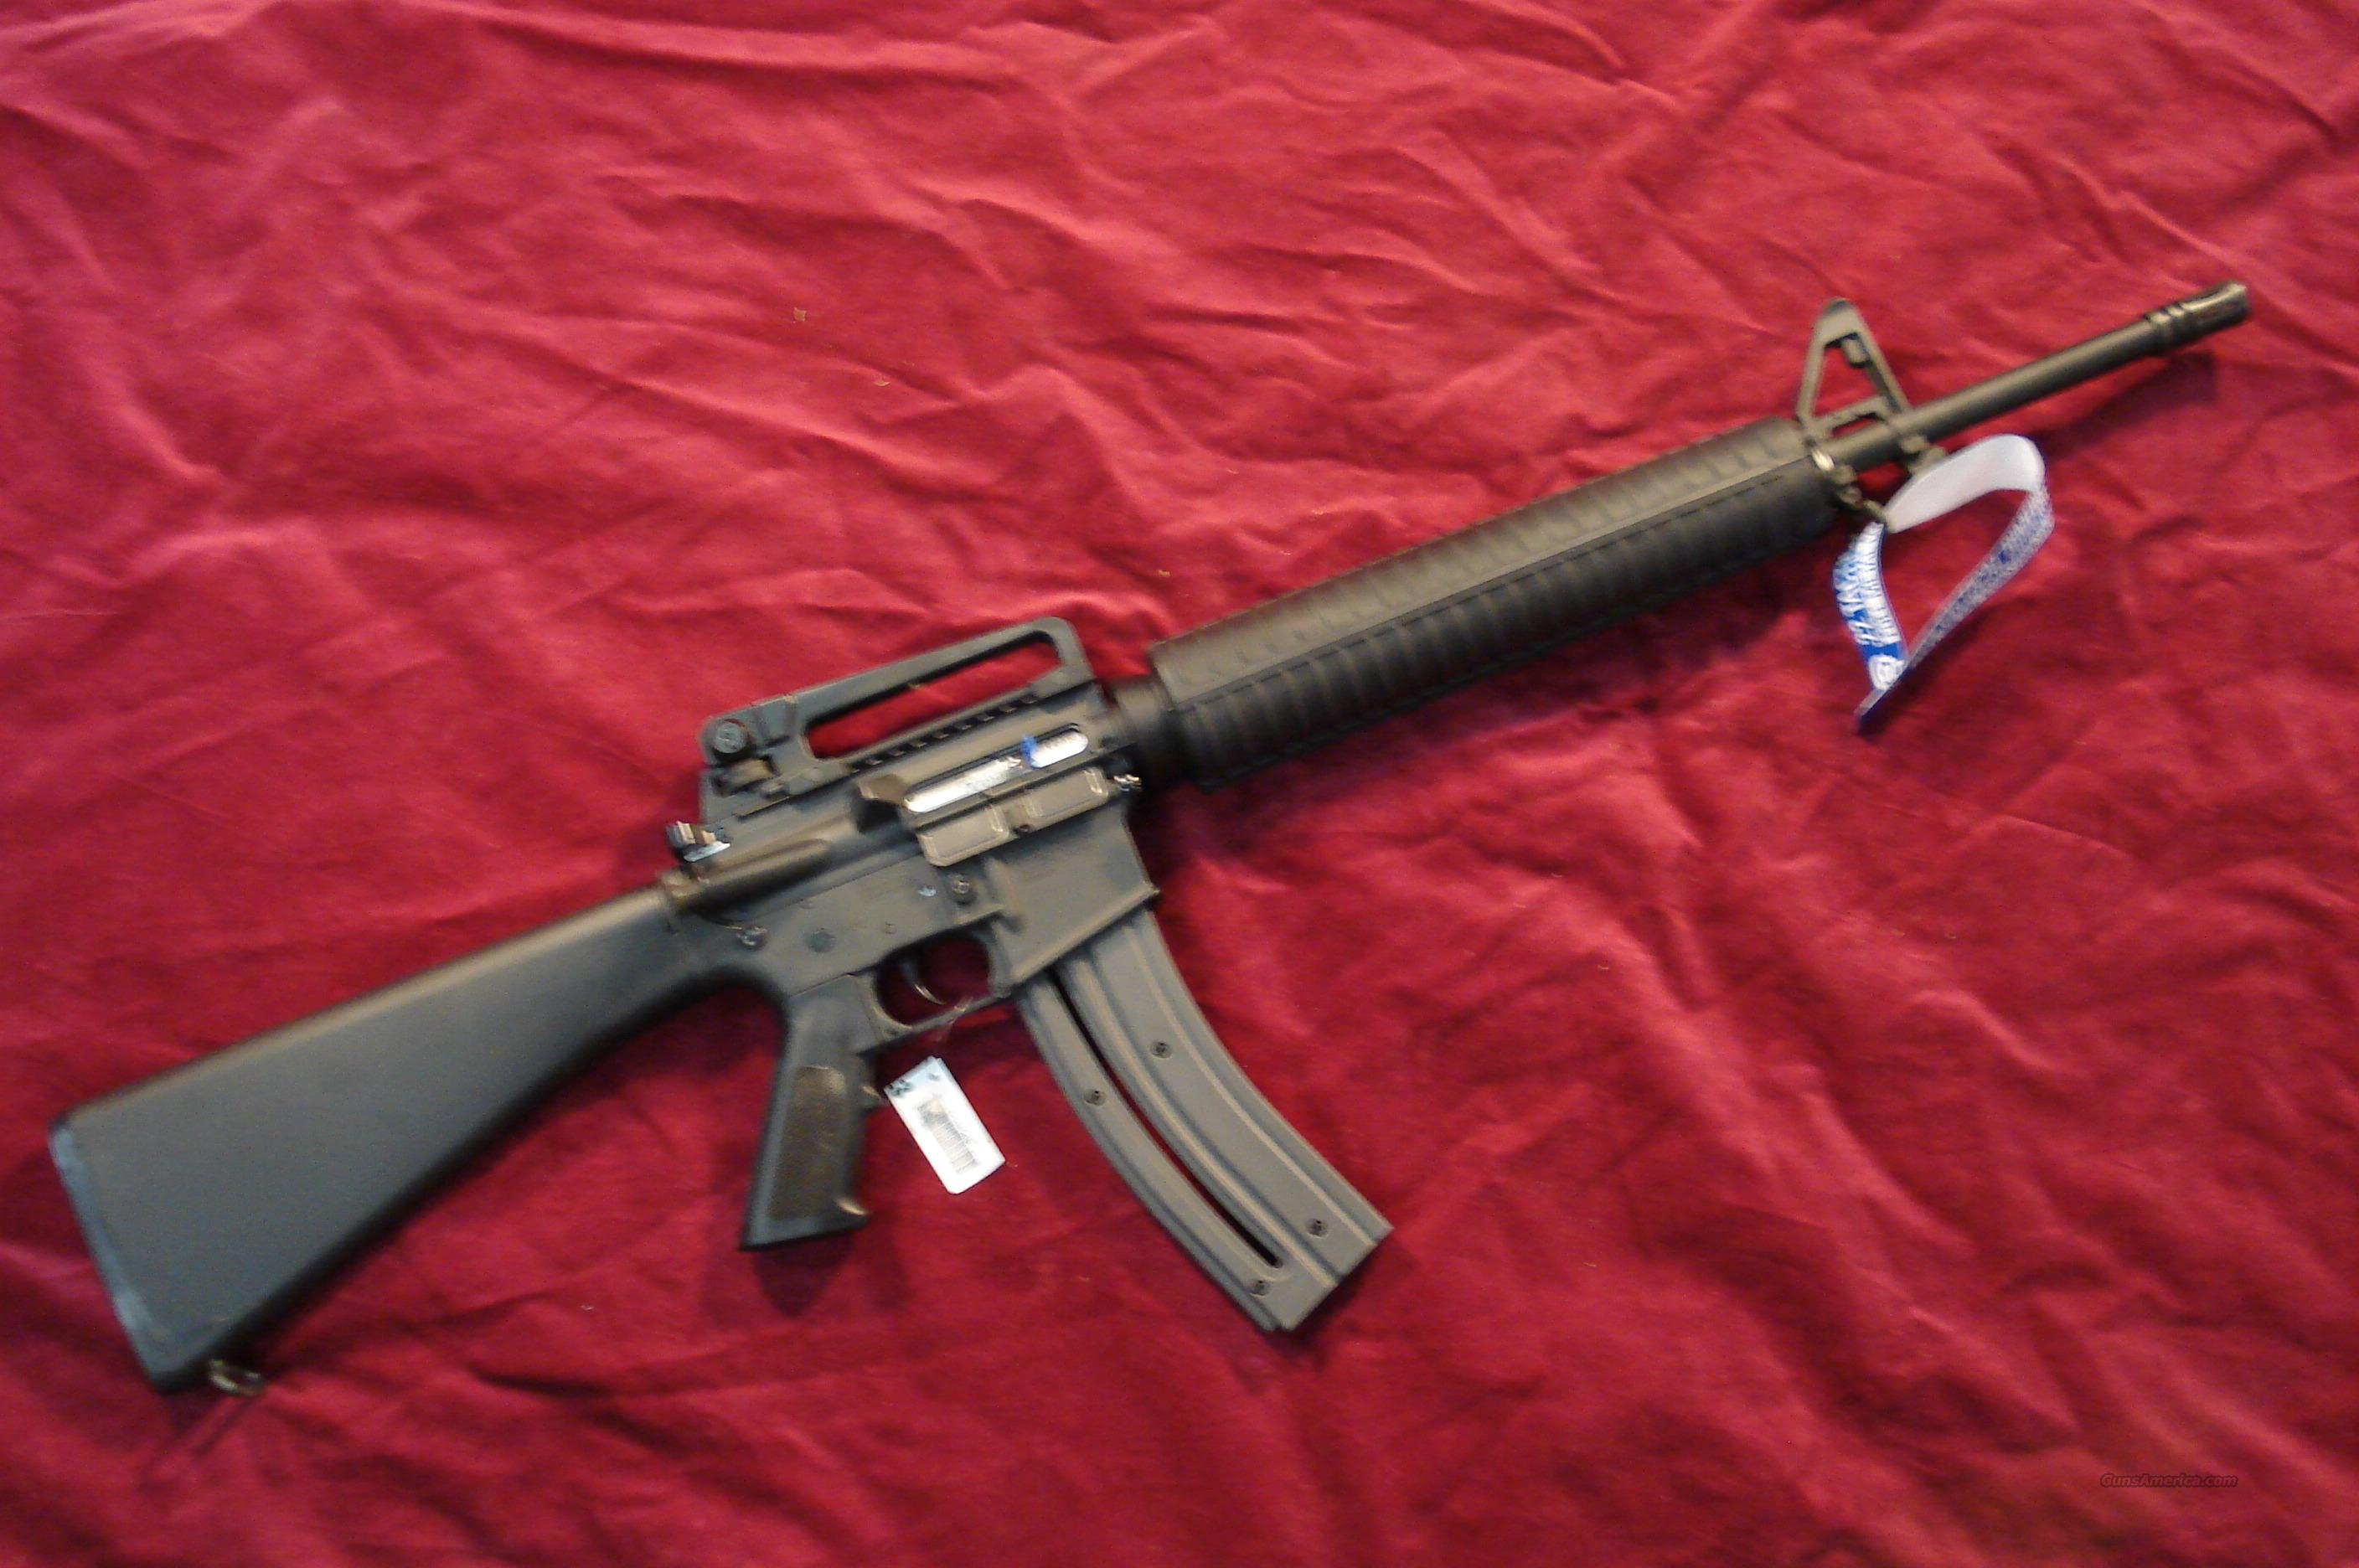 COLT M16 FLAT TOP 22LR CAL. NEW  Guns > Rifles > Colt Military/Tactical Rifles